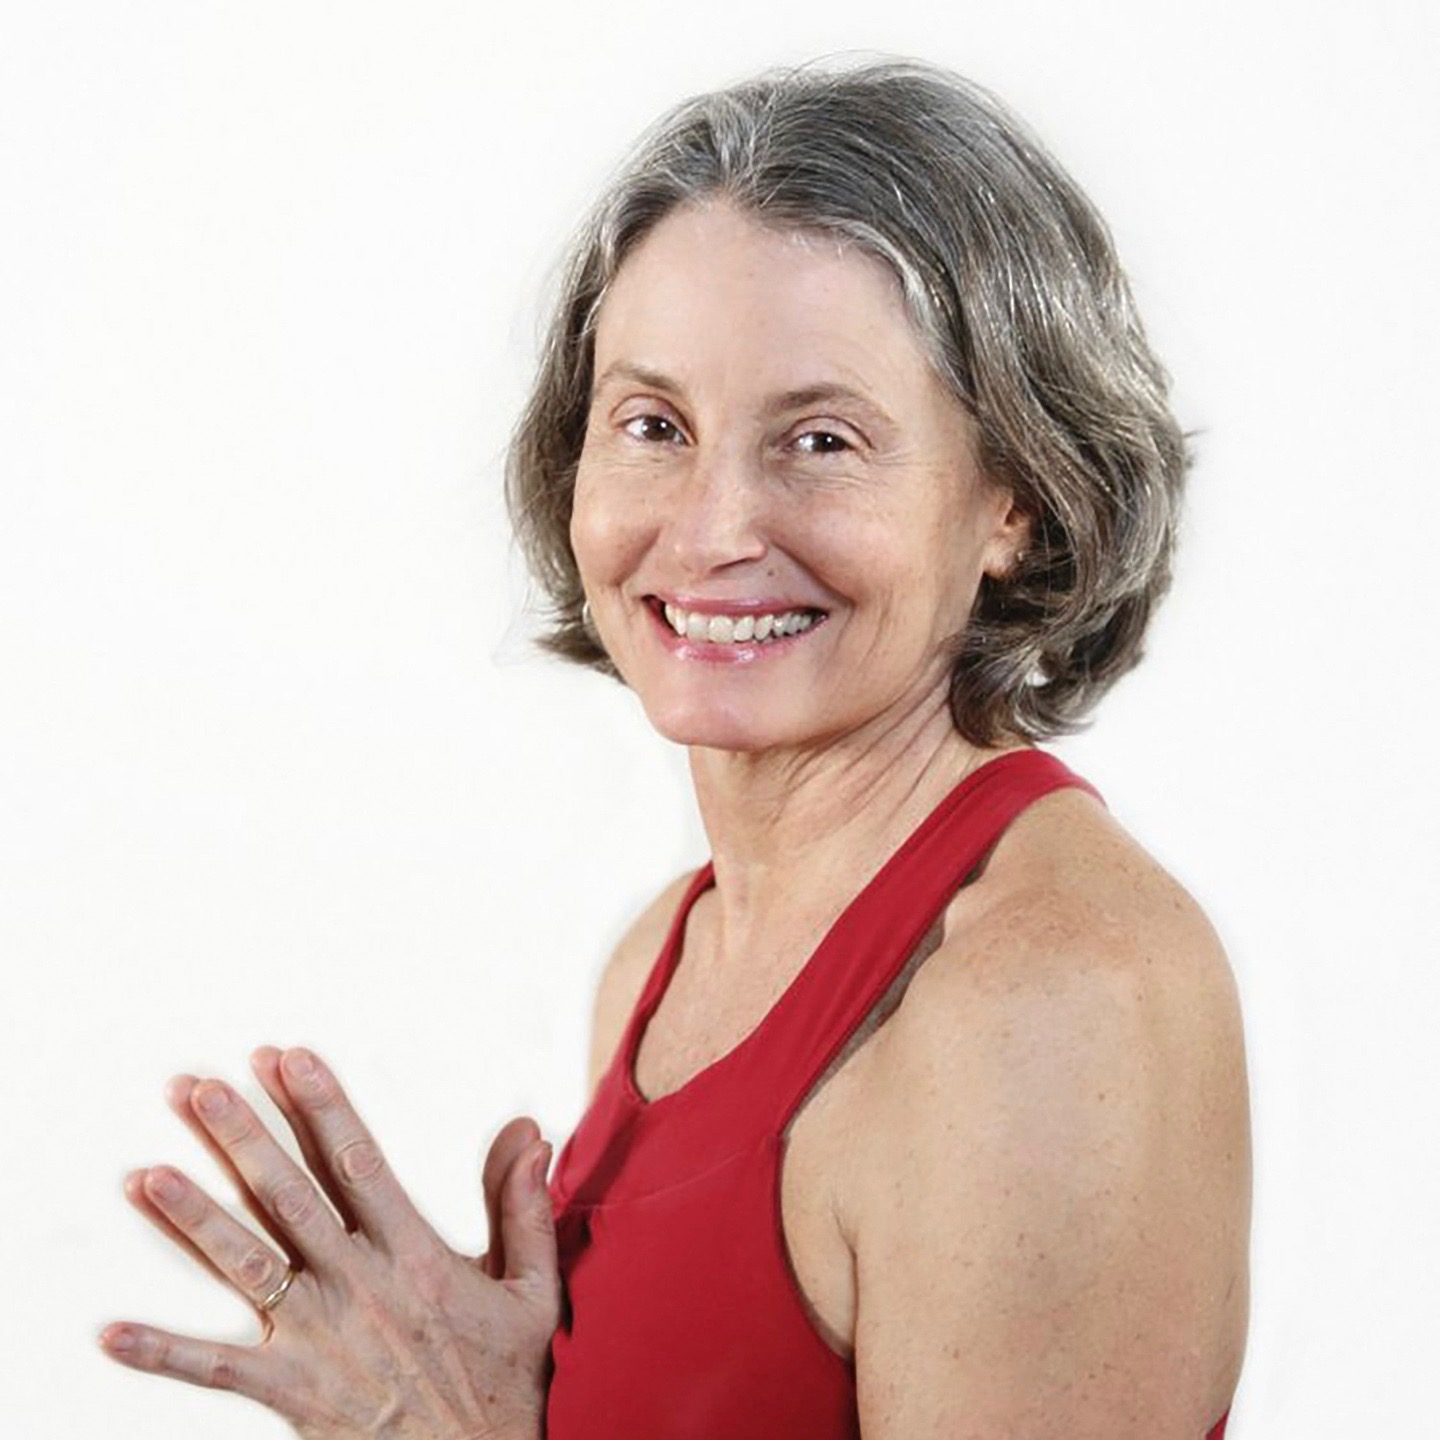 Smiling woman in a red top